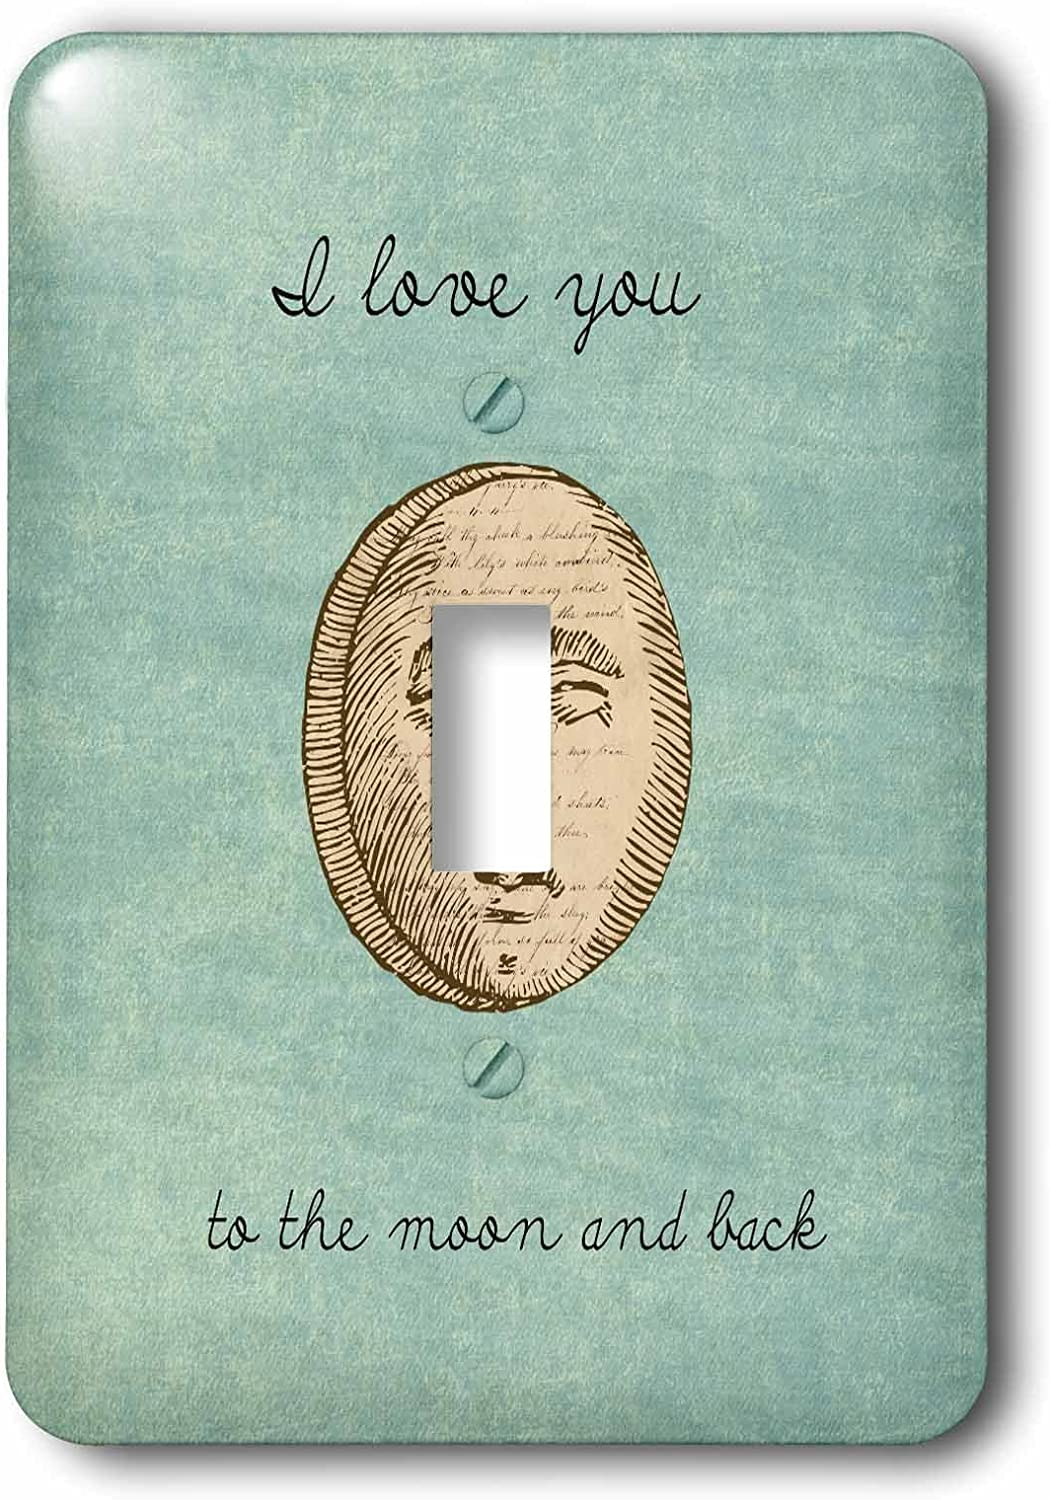 3drose Lsp 152137 1 I Love You To The Moon And Back Inspirational Art Light Switch Cover Amazon Com